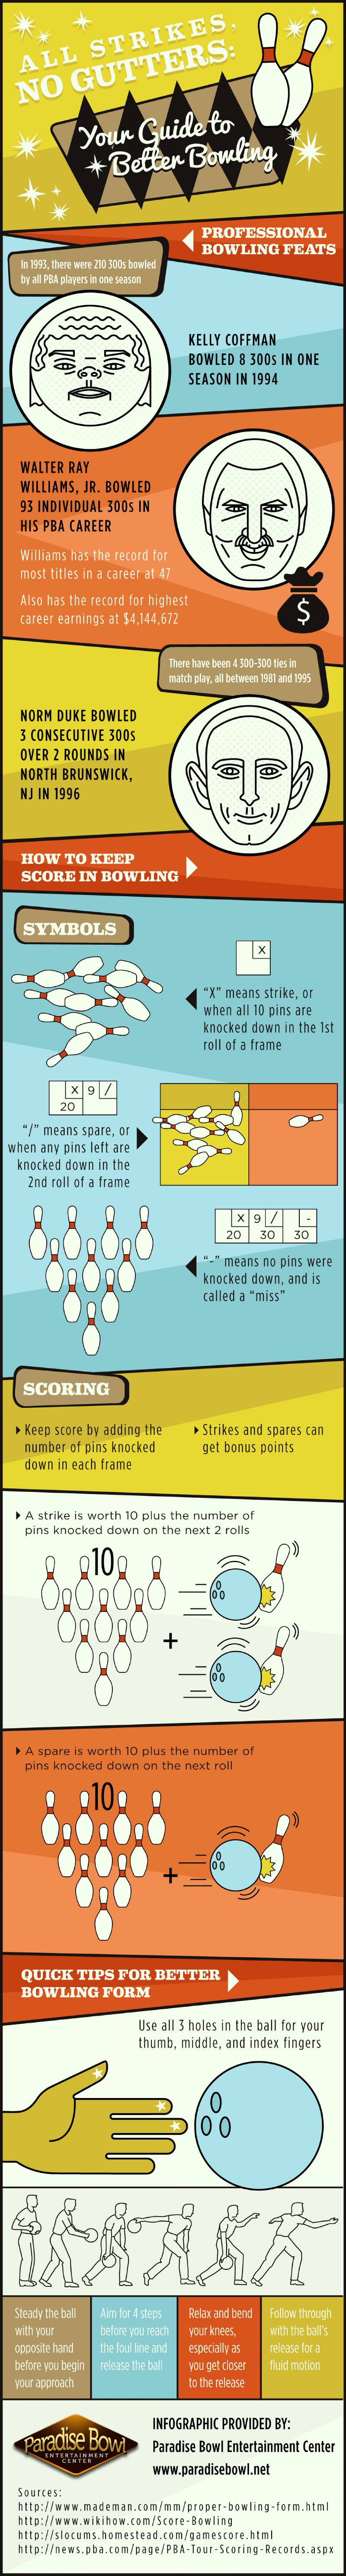 Bowling Facts